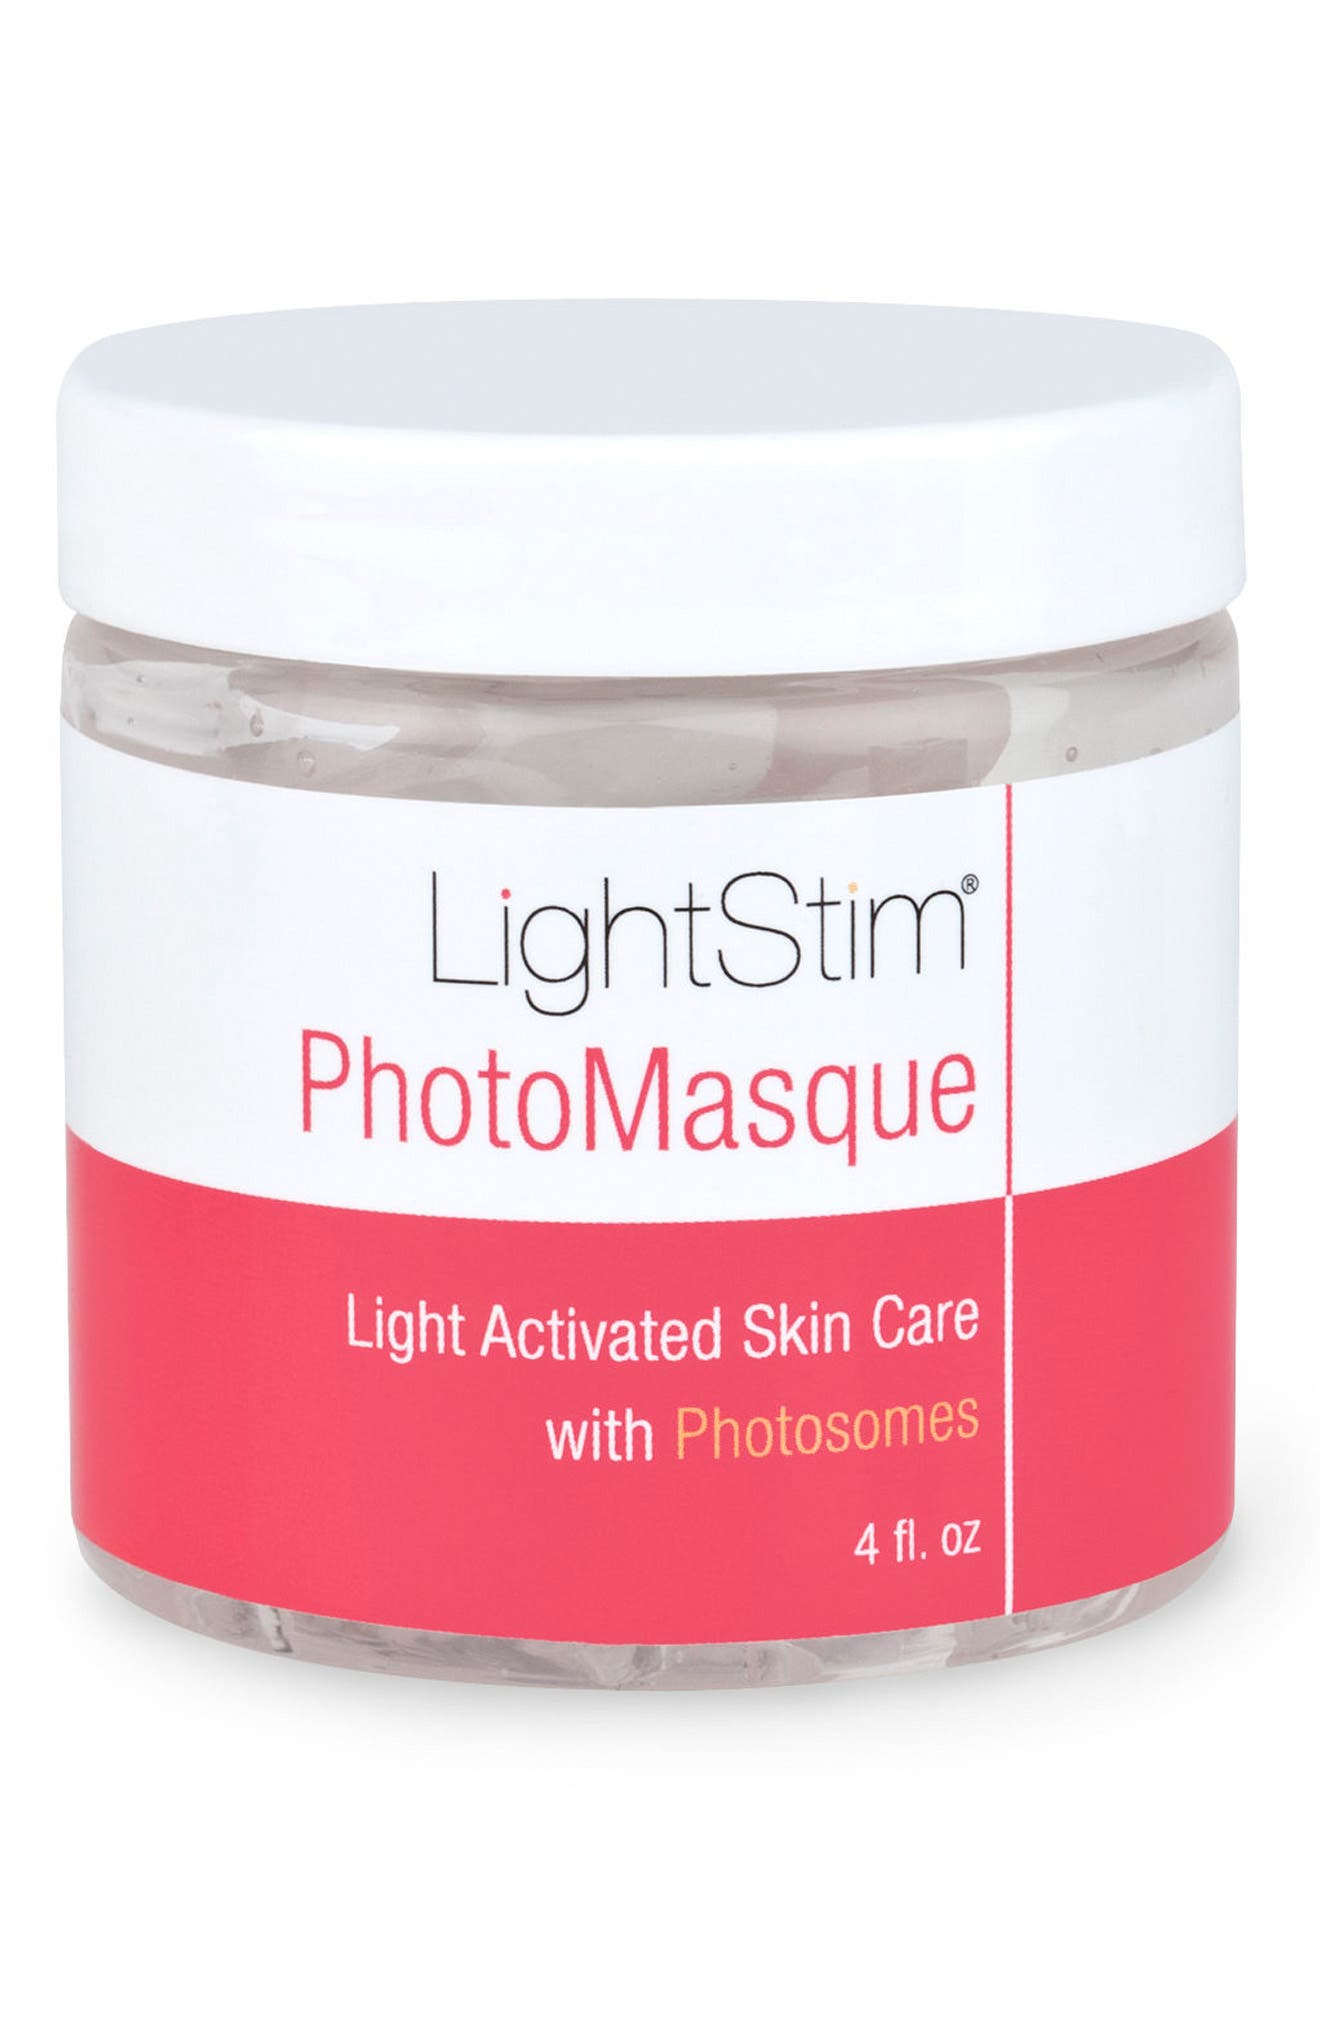 LightStim PhotoMasque Light Activated Skin Care,                             Main thumbnail 1, color,                             000